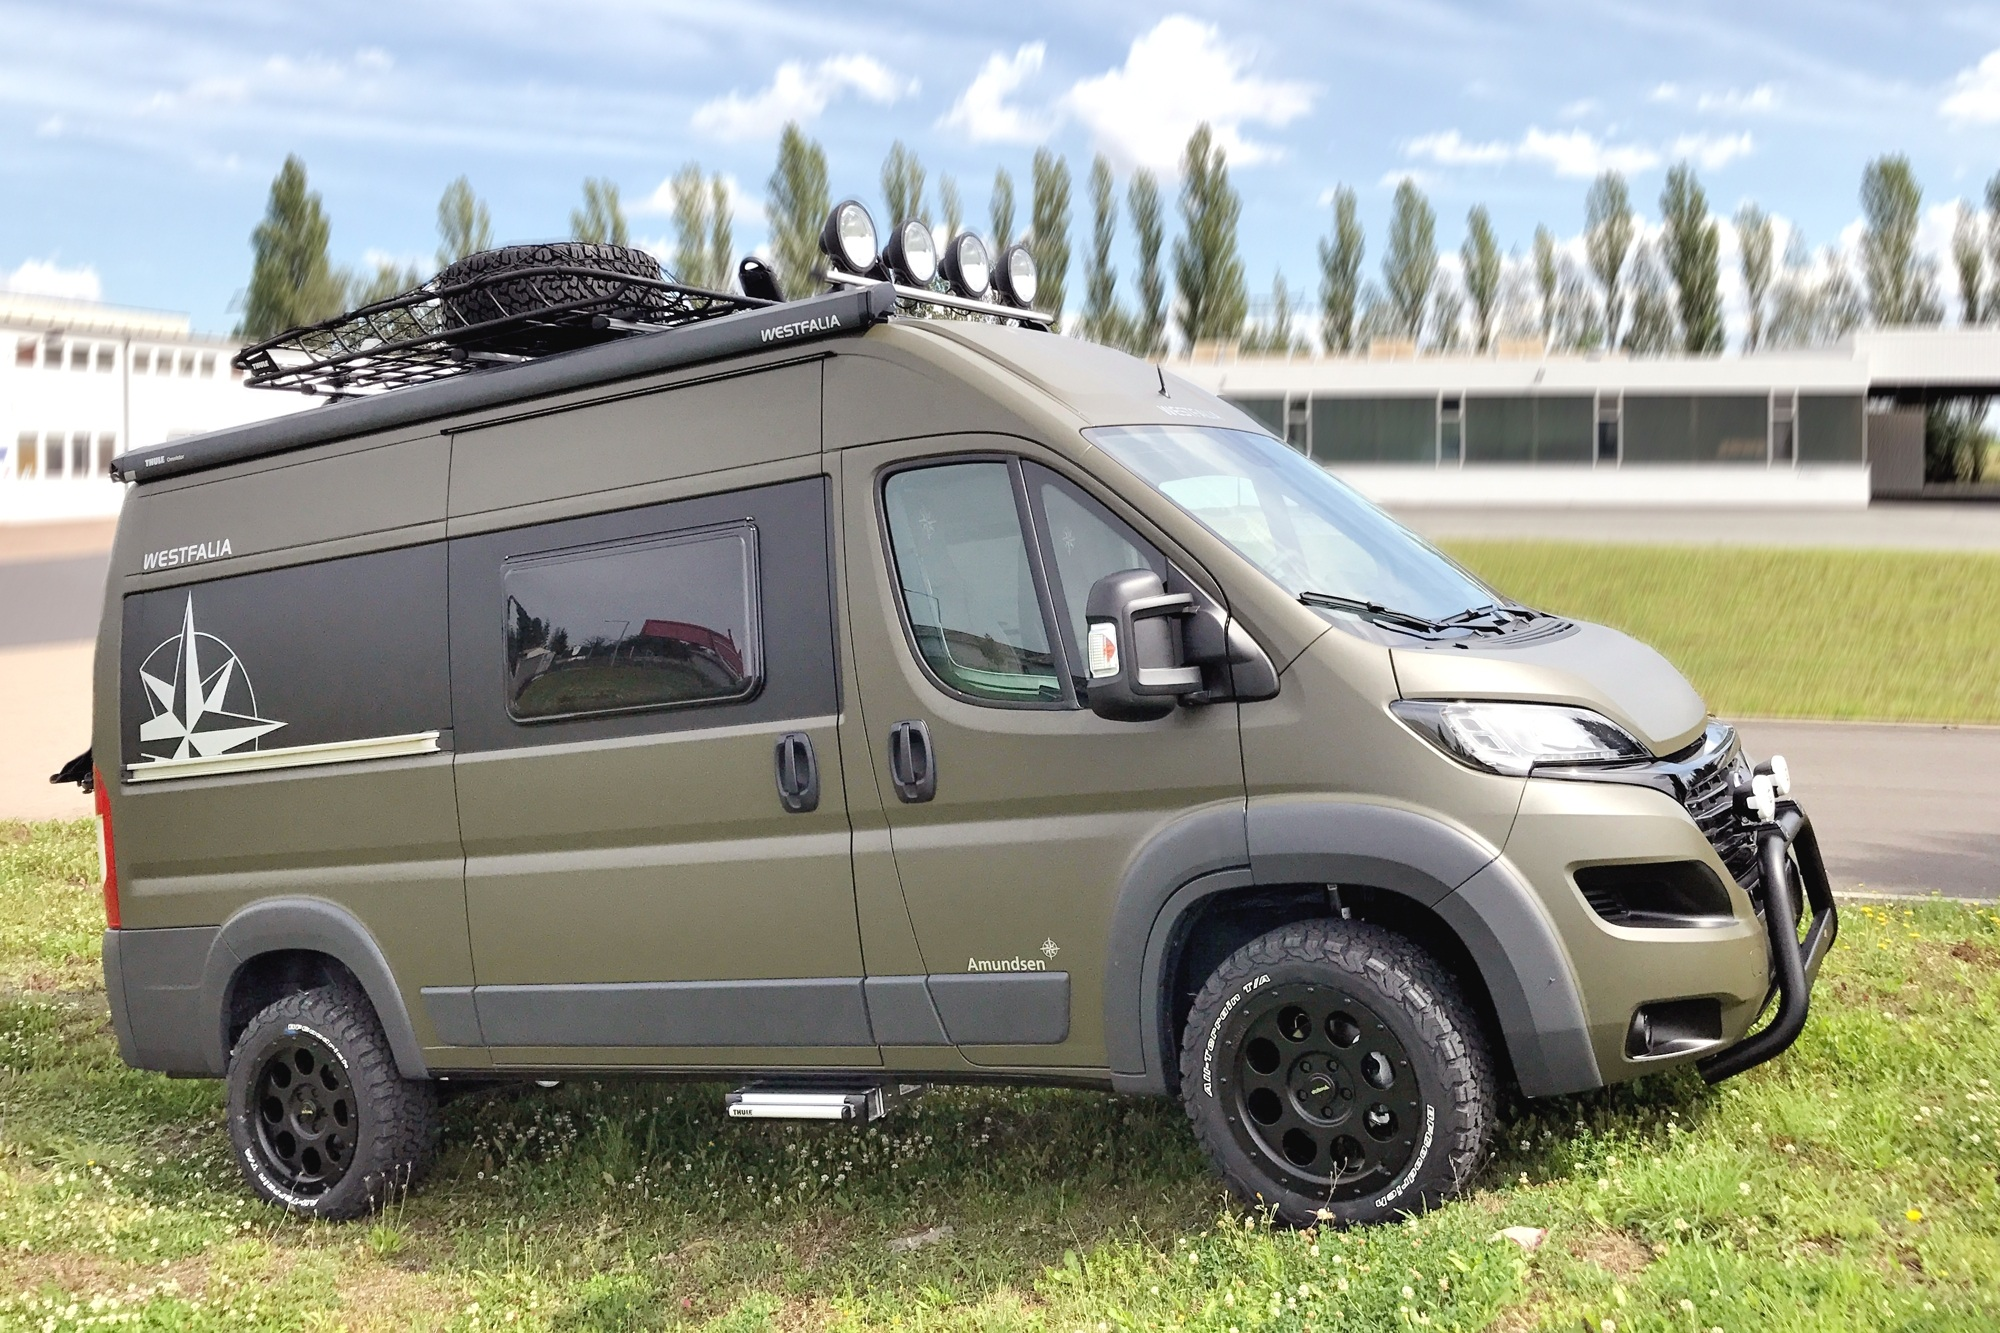 Bad Kissingen Offroad Elcamp Na Poznań Motor Show 2018 • Camprest.com